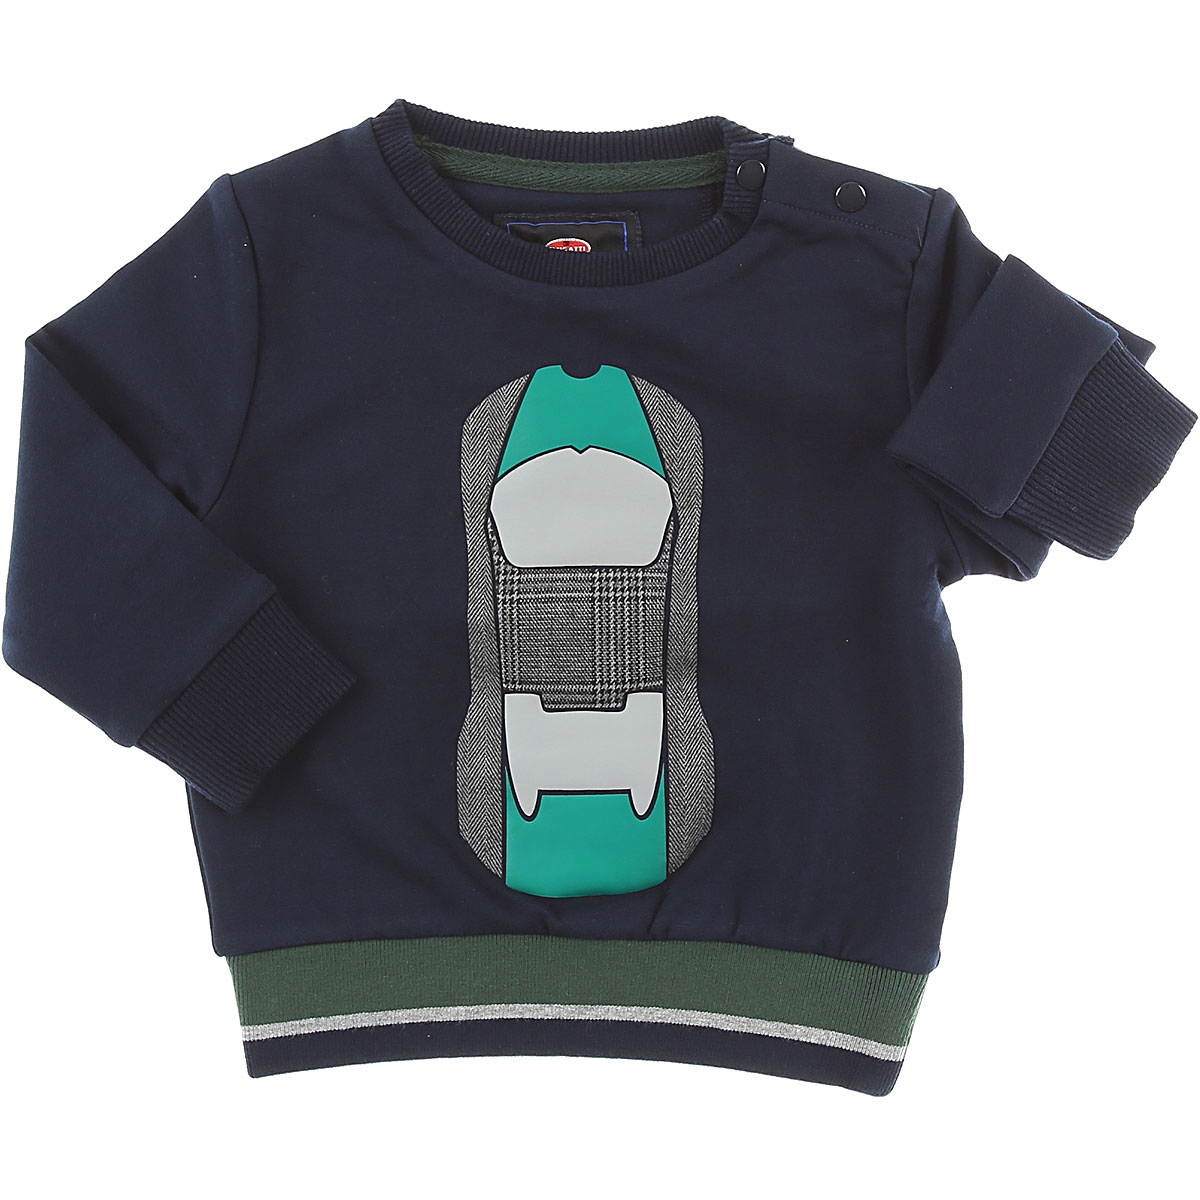 Image of Bugatti Baby Sweatshirts & Hoodies for Boys, Navy Blue, Cotton, 2017, 12M 18M 6M 9M